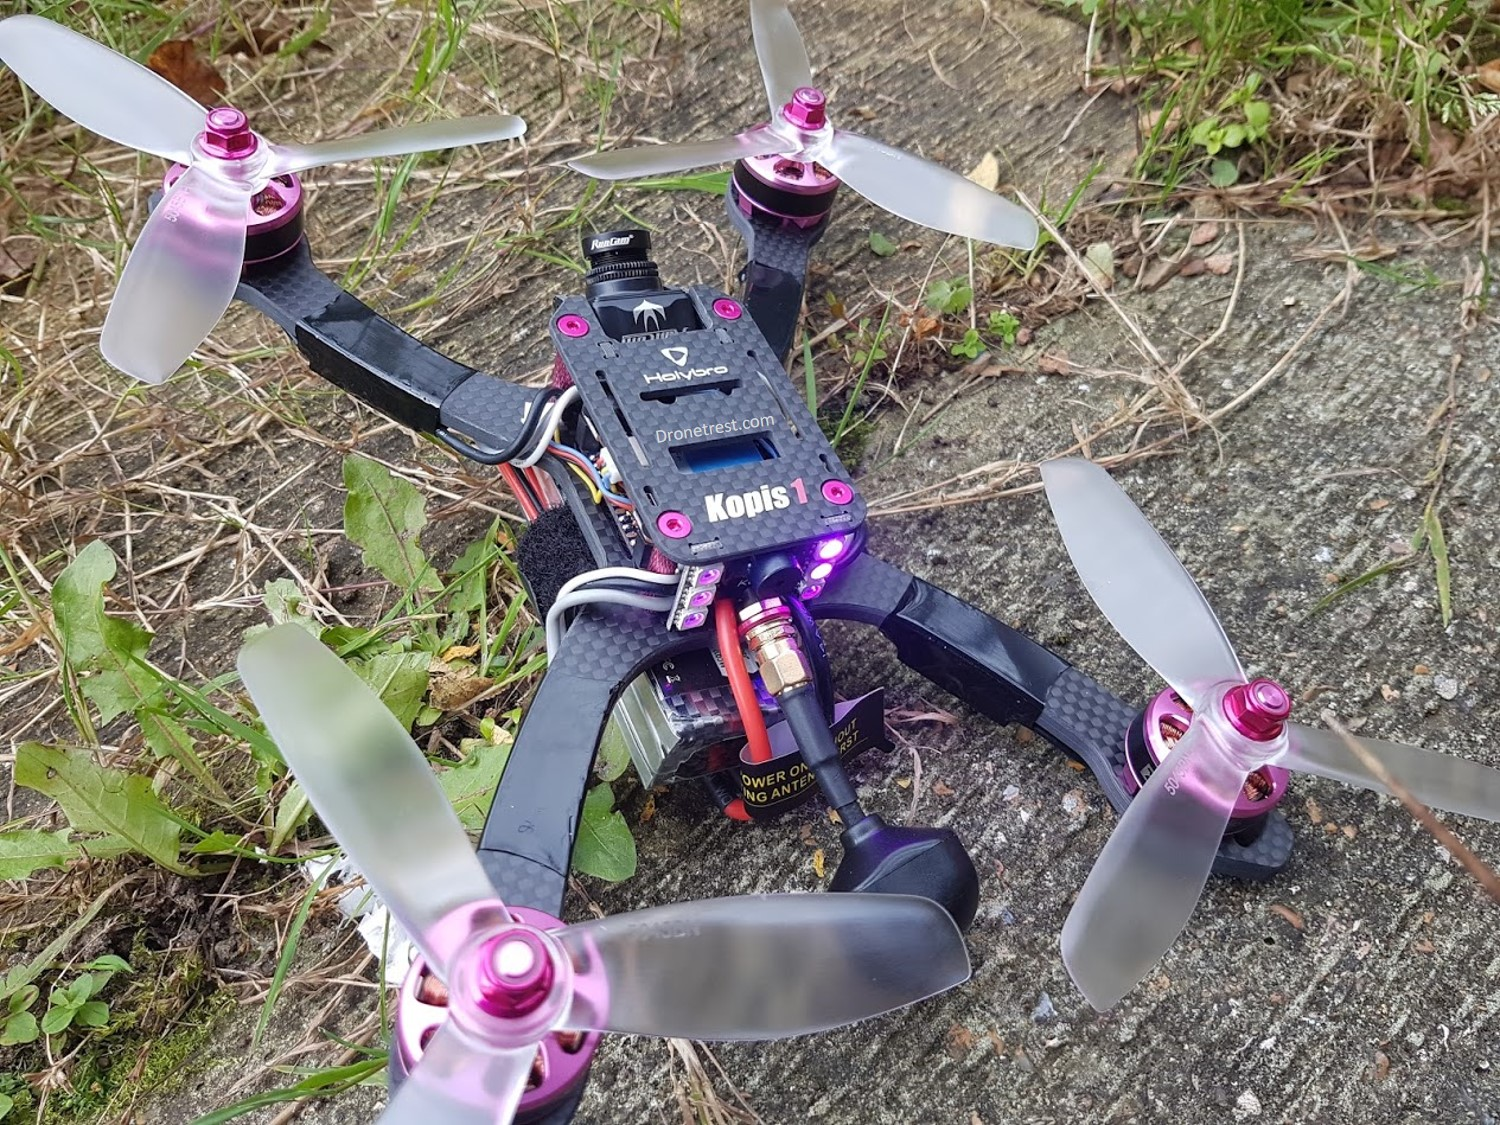 HolyBro 🗡️ Kopis 1 FPV Quadcopter Review –  Low Deck, Top Spec